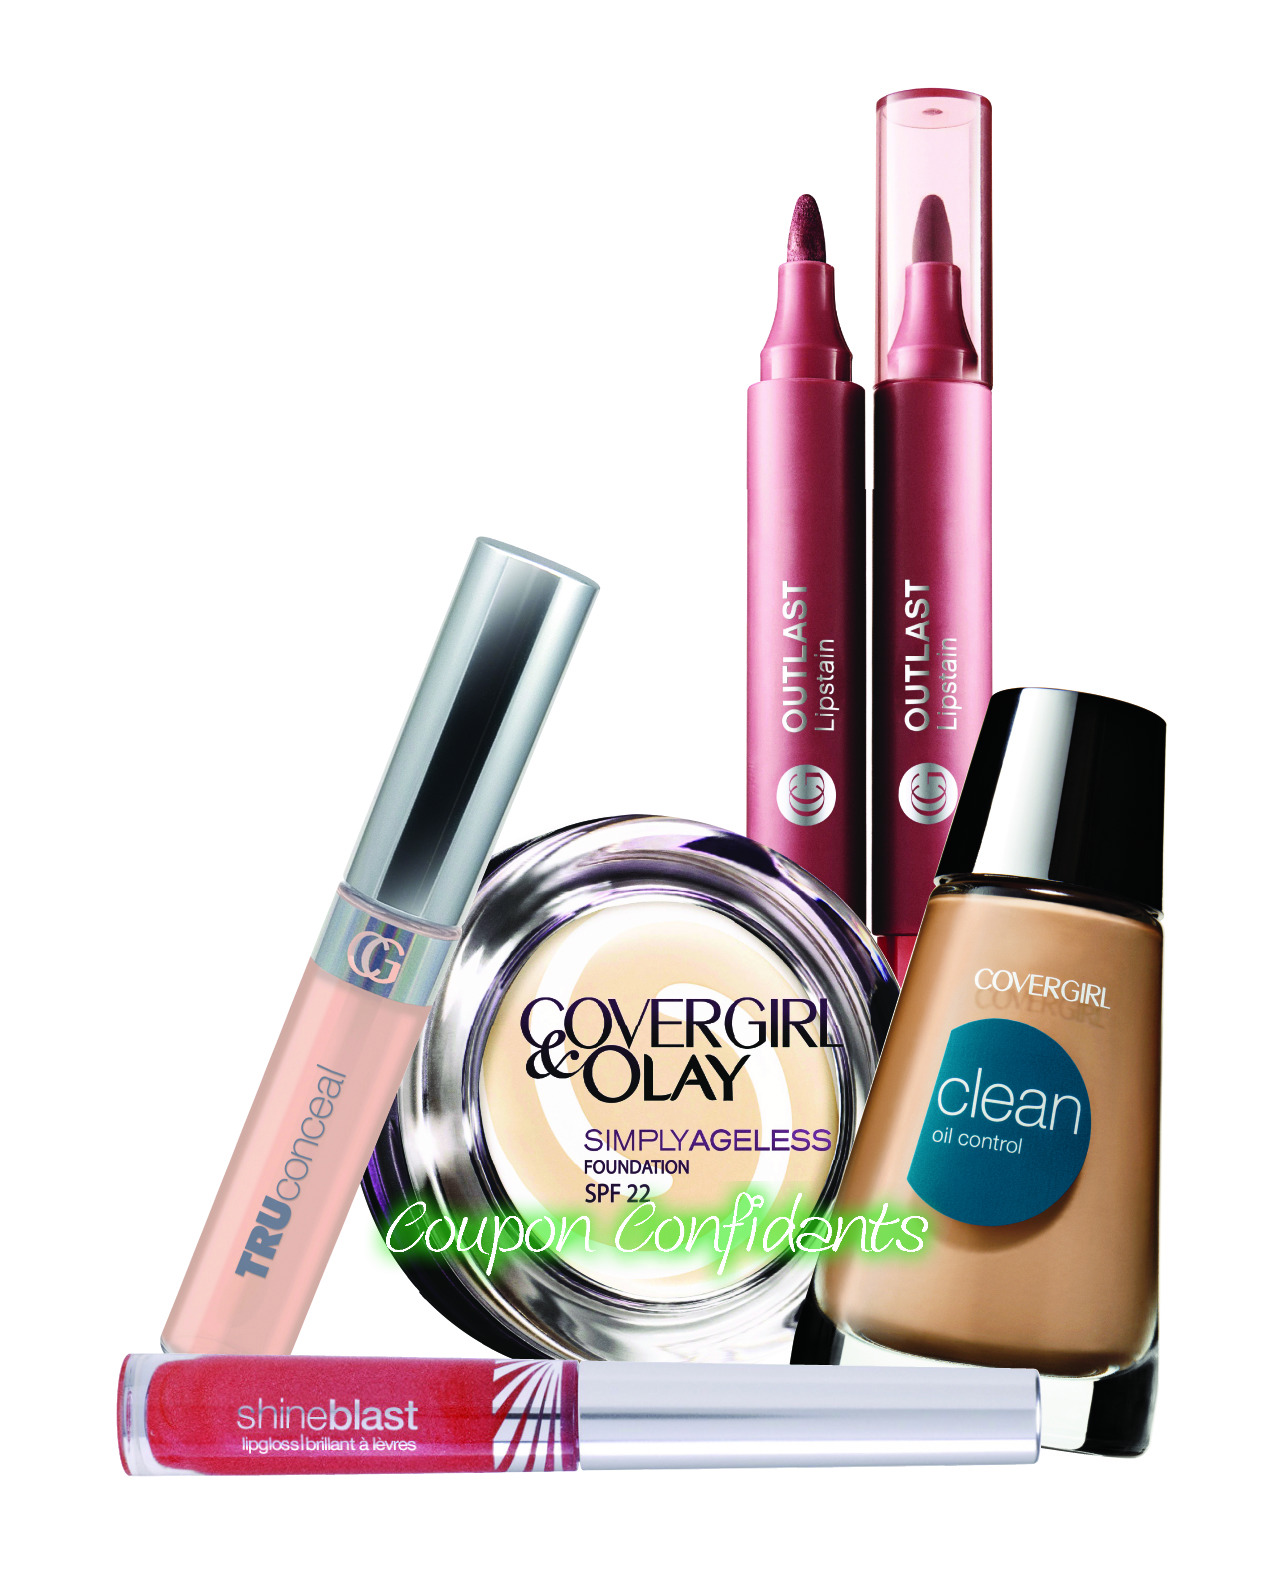 image regarding Covergirl Printable Coupons referred to as CoverGirl Printable Discount codes! Of course! ⋆ Coupon Confidants